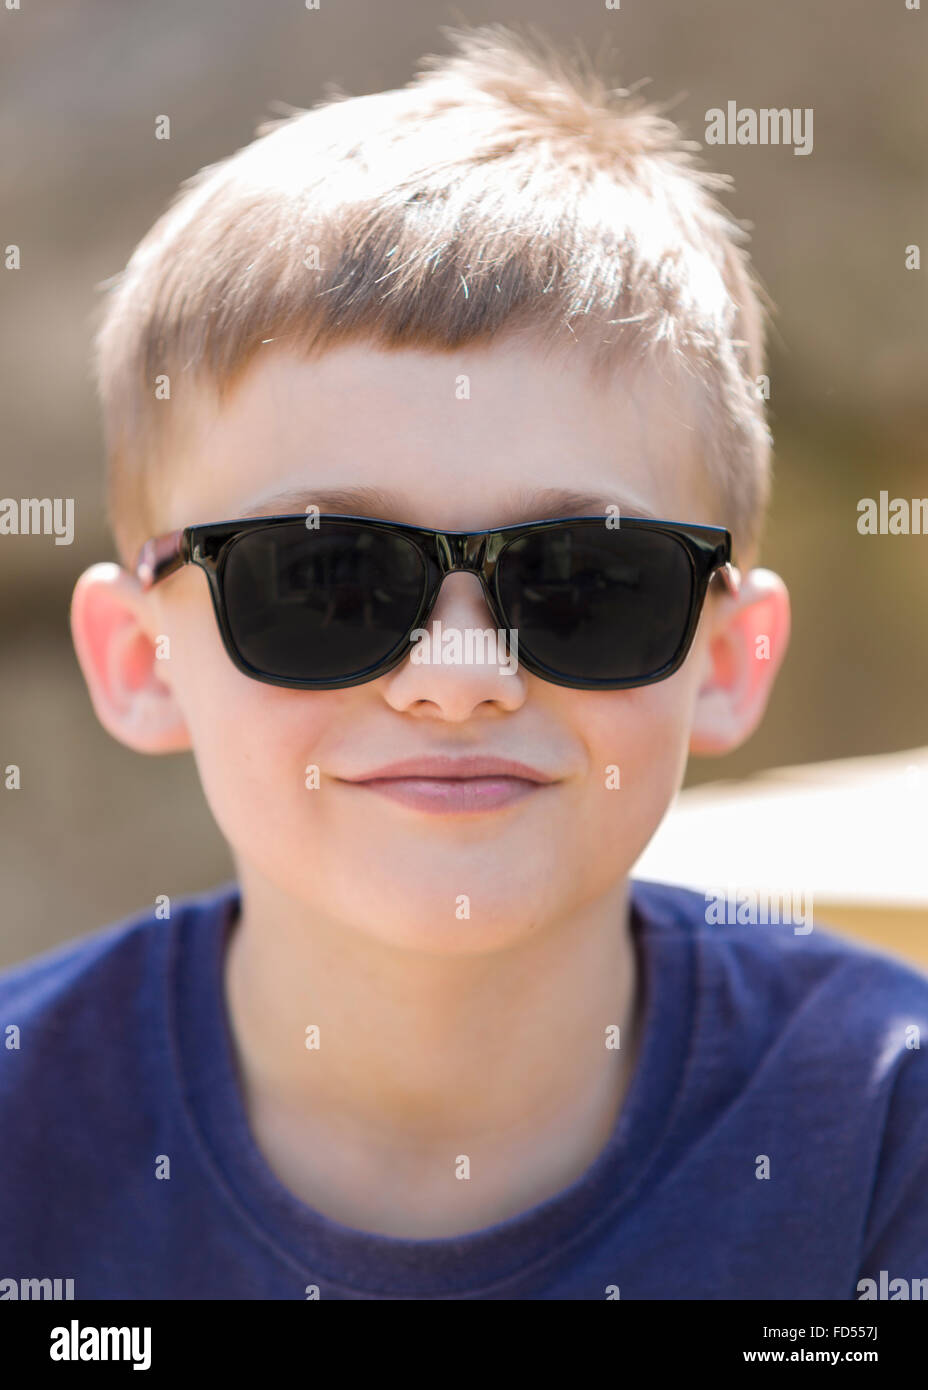 728e115ba947 Young boy wearing sunglasses outdoor portrait Model Release: Yes. Property  Release: No.